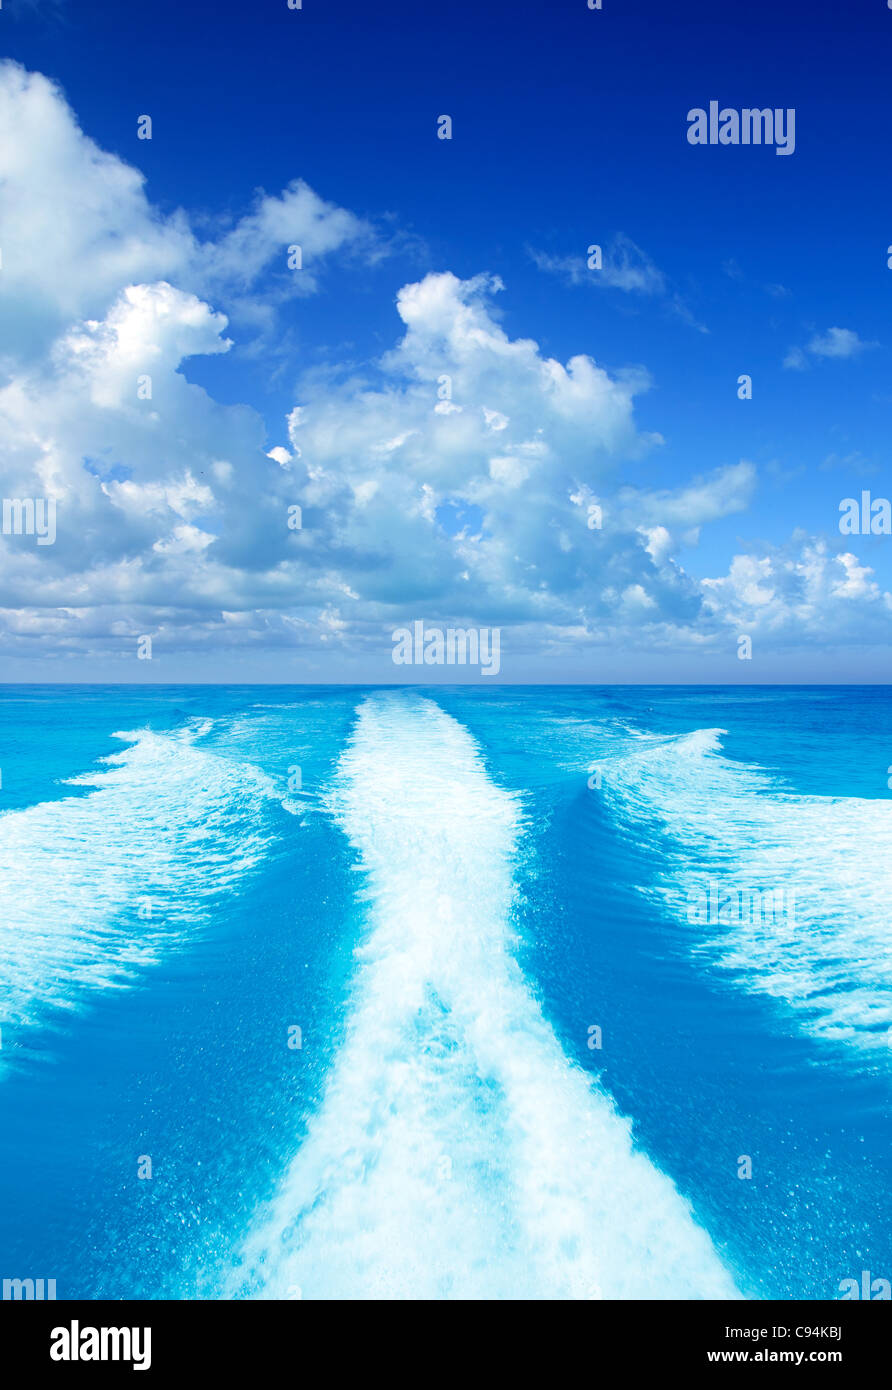 Boat wake prop wash on turquoise sea in sunny day - Stock Image